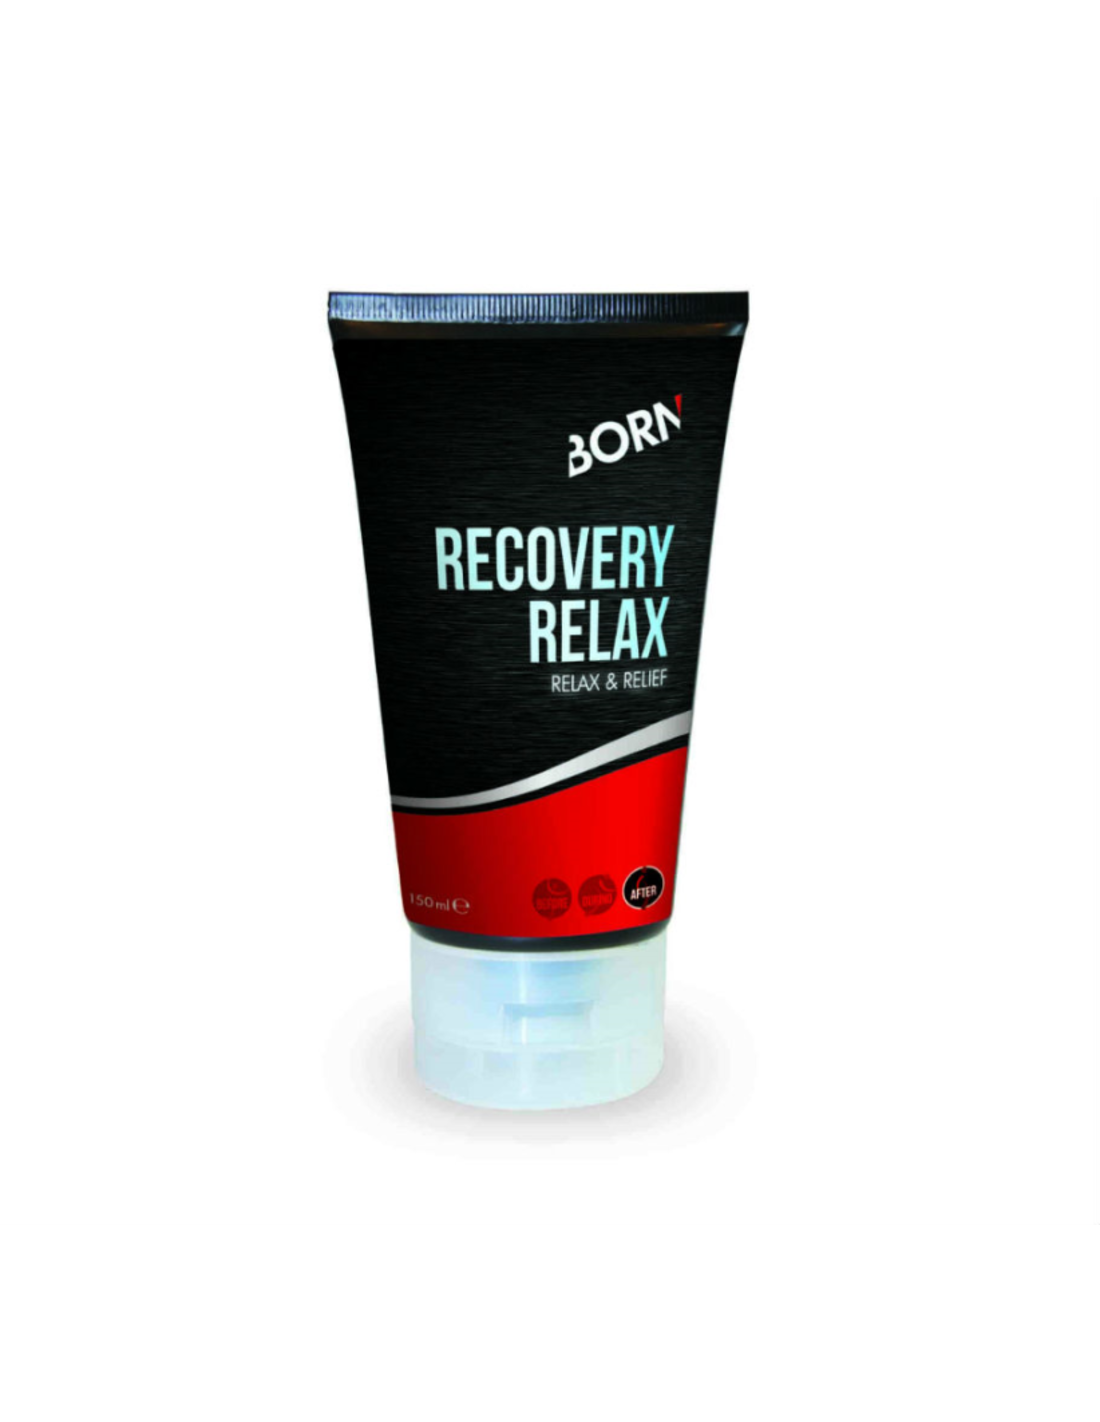 | BORN Recovery Relax 150ML